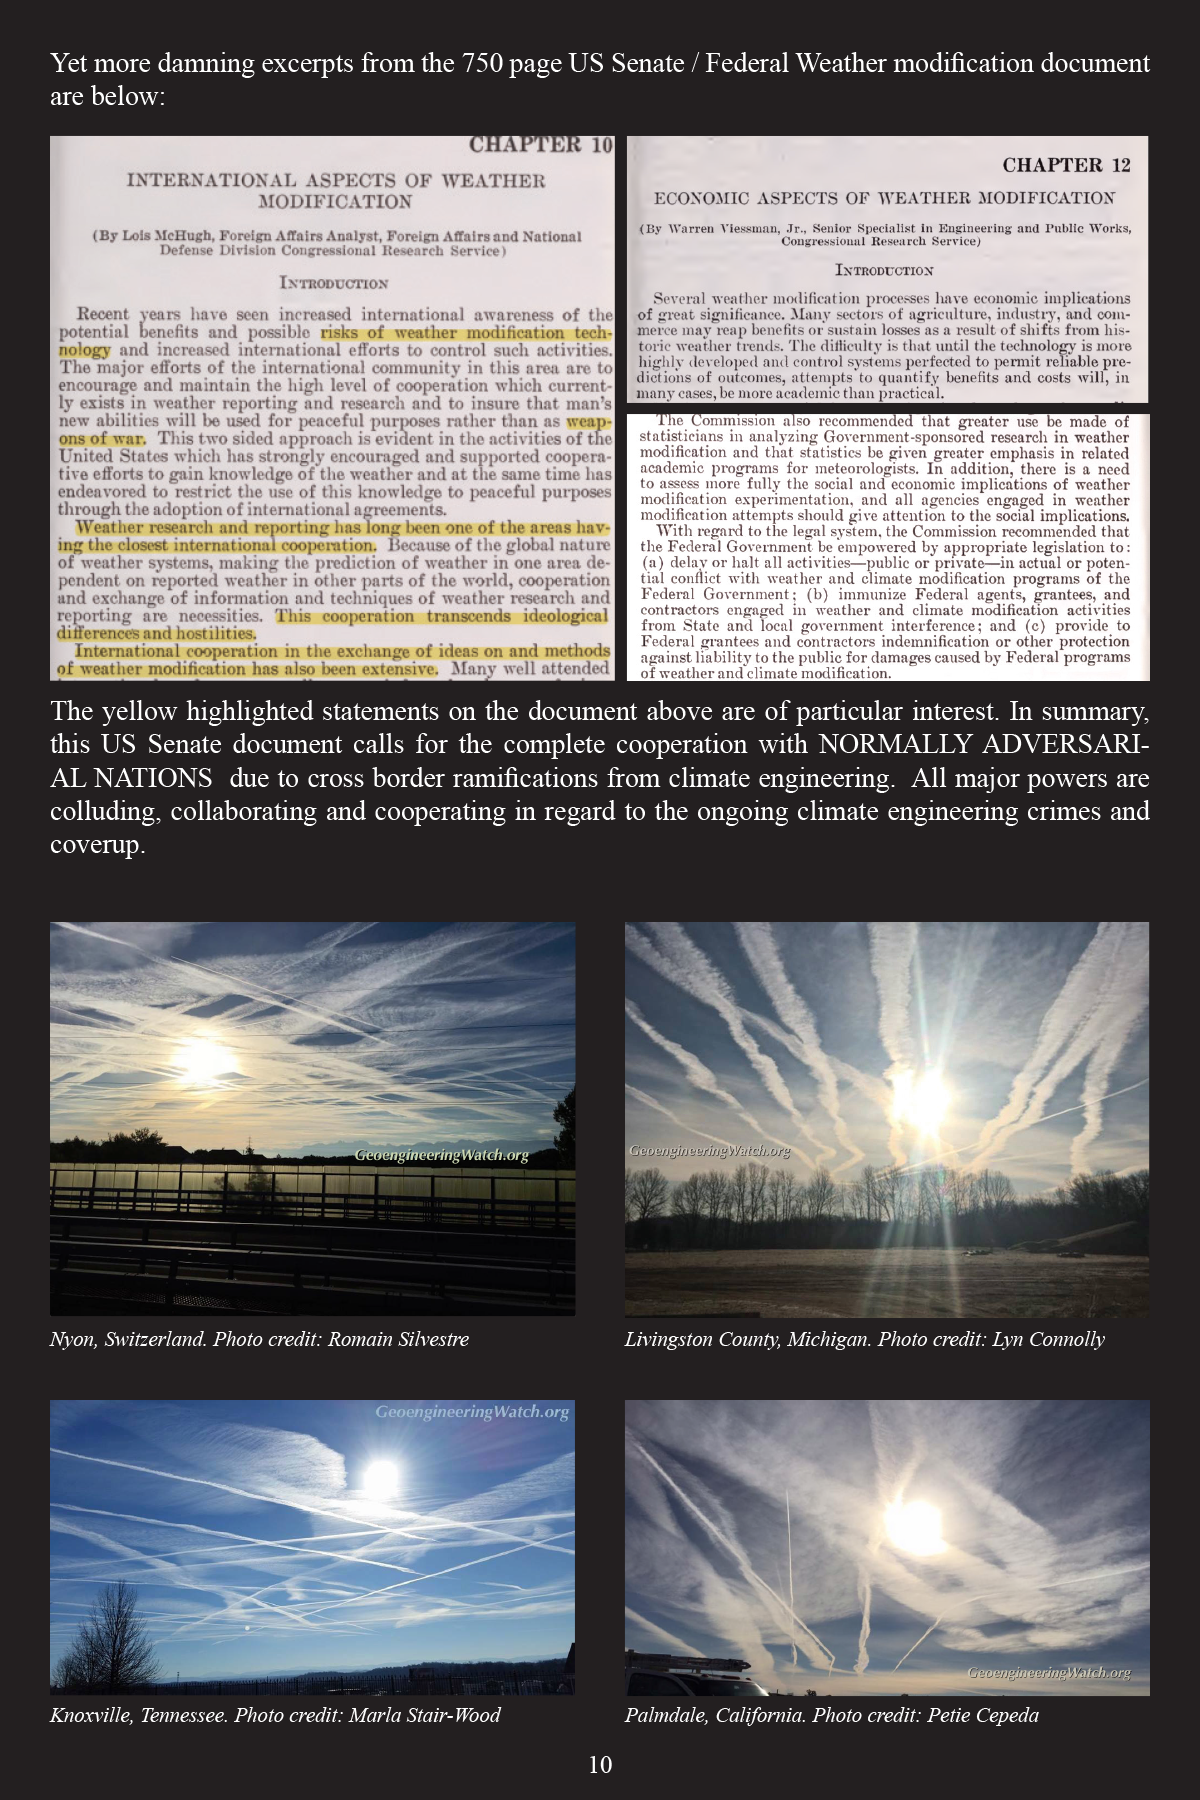 Climate Engineering Fact And Photo Summary - page 10